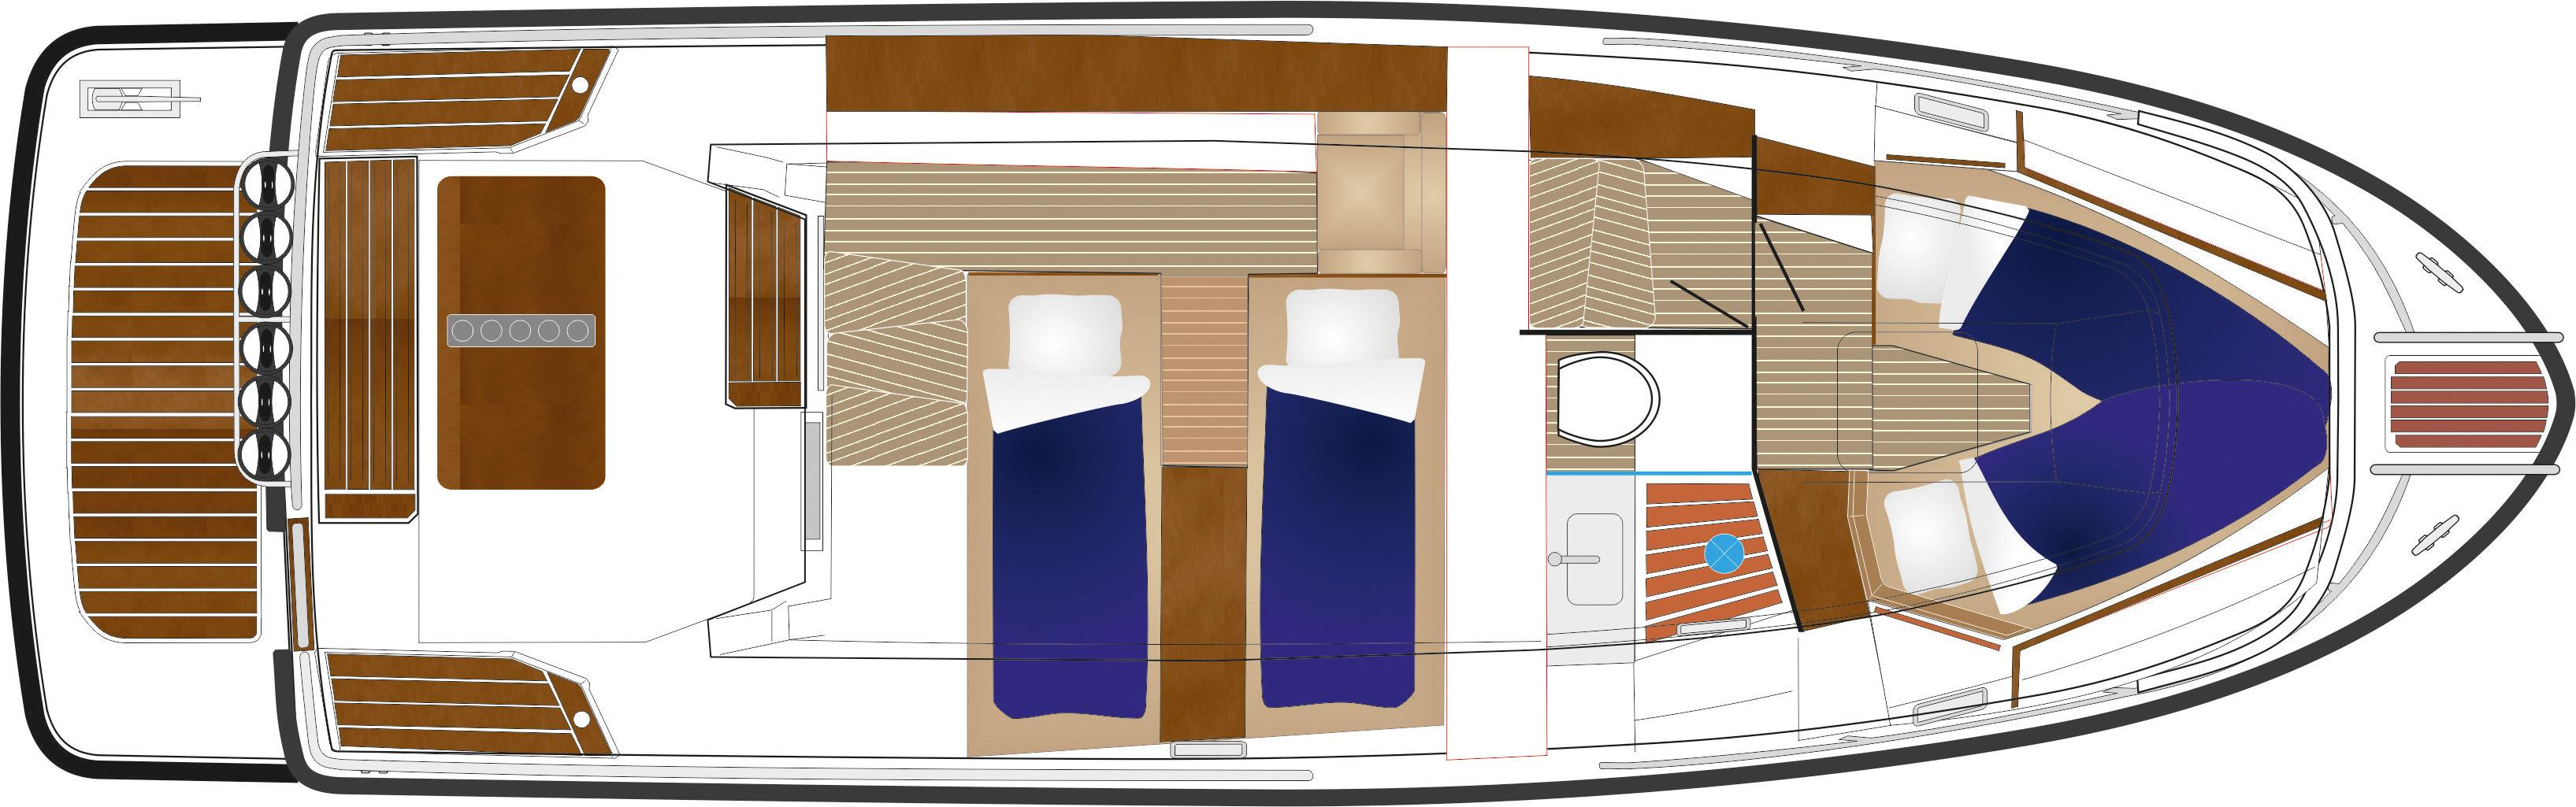 Sargo 33 Explorer - lower deck plan